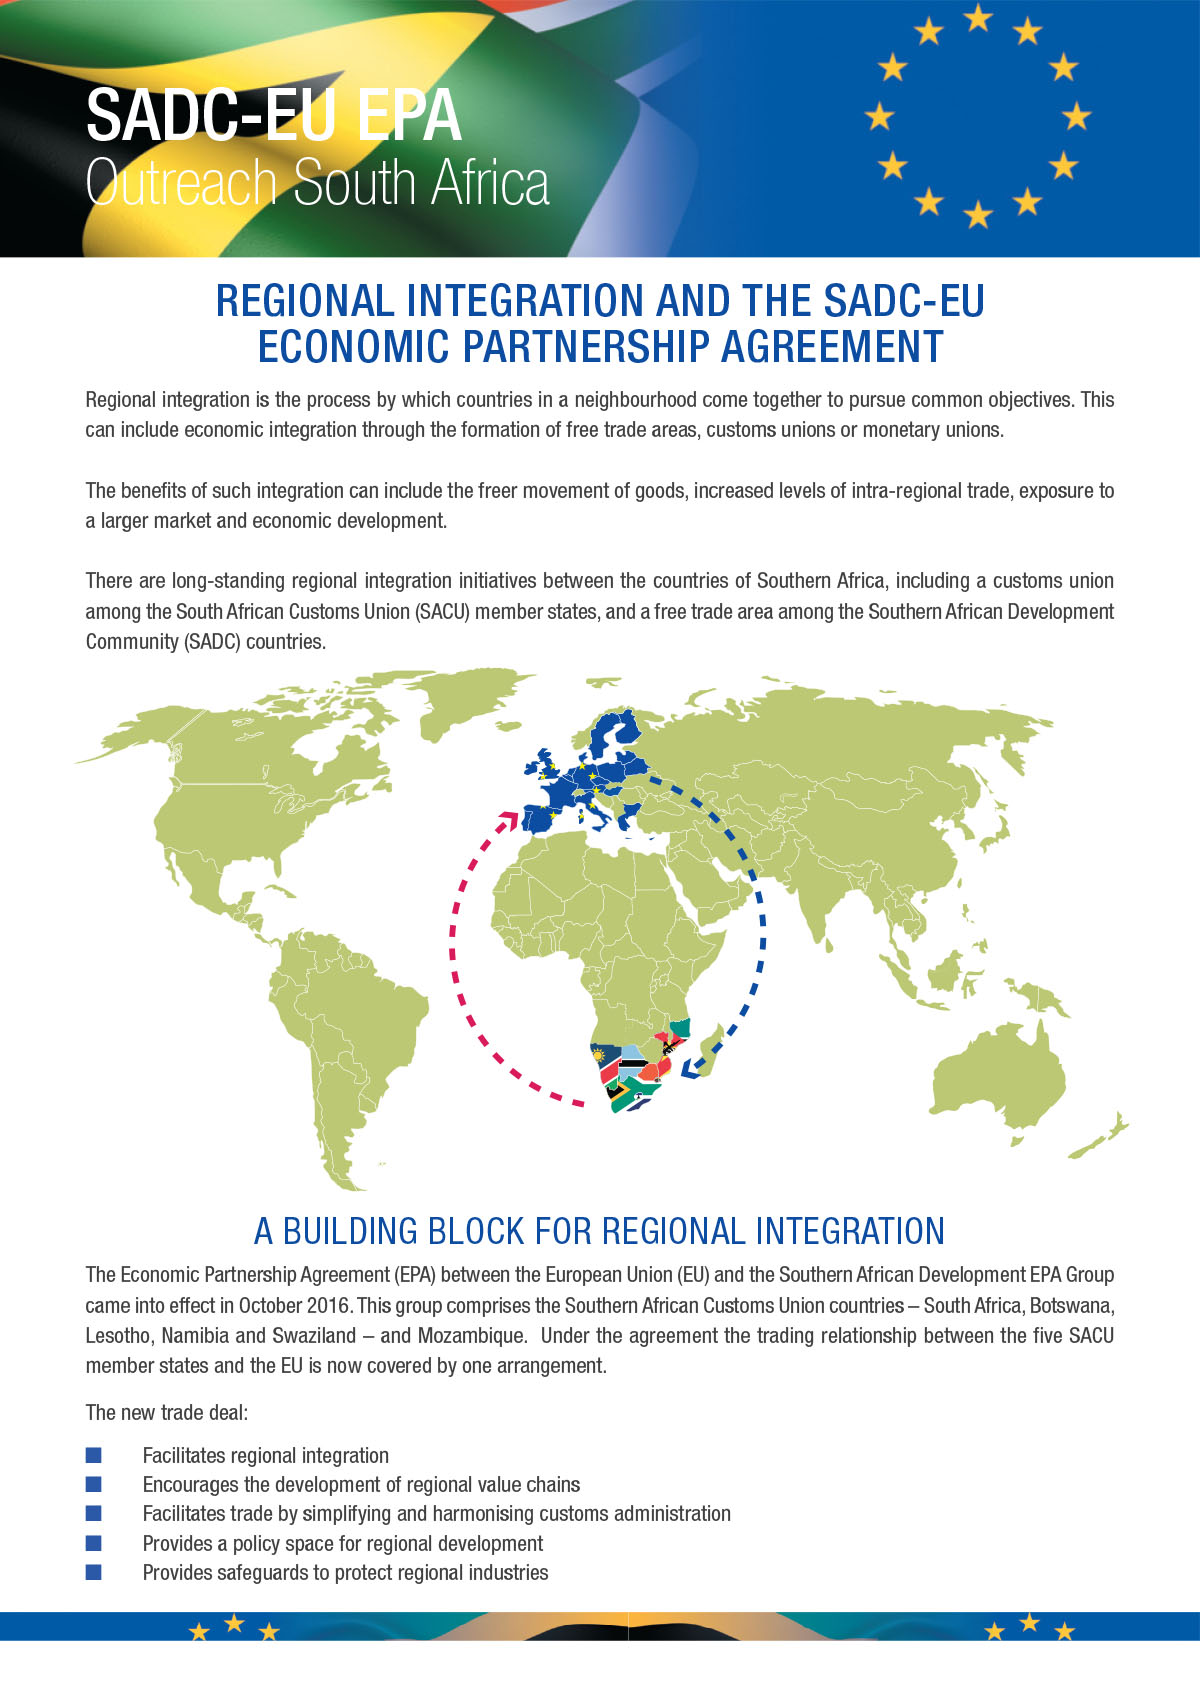 Sadc Eu Epa Outreach Regional Integration And The Sadc Eu Epa